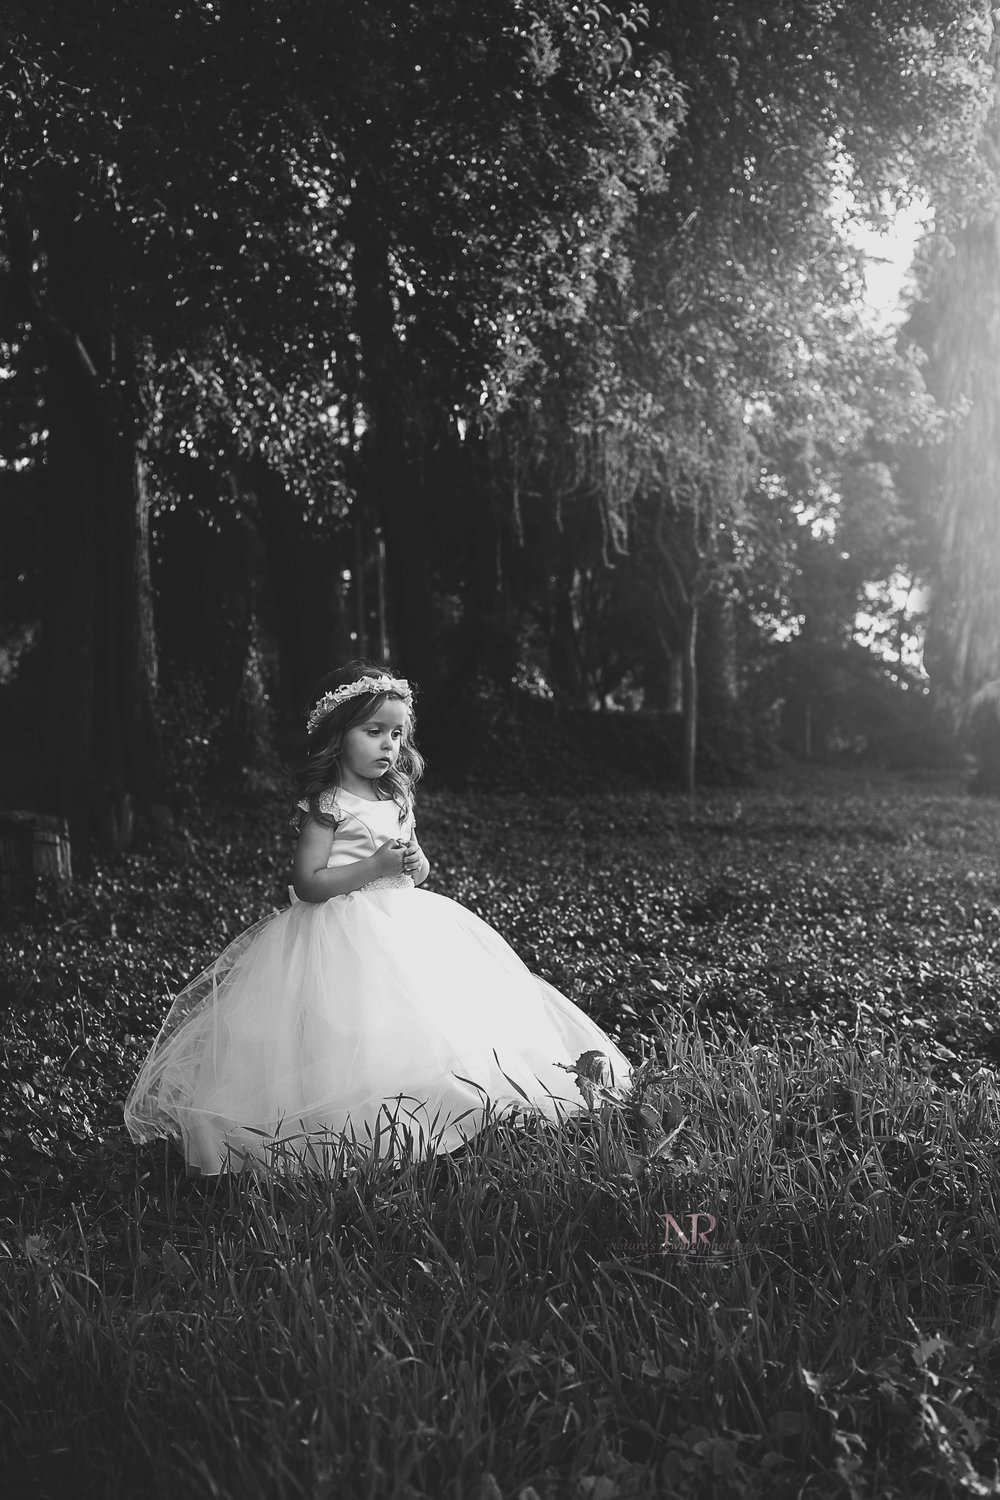 See how she is now the cake and nature has become just the icing.  I adore this black and white so much!